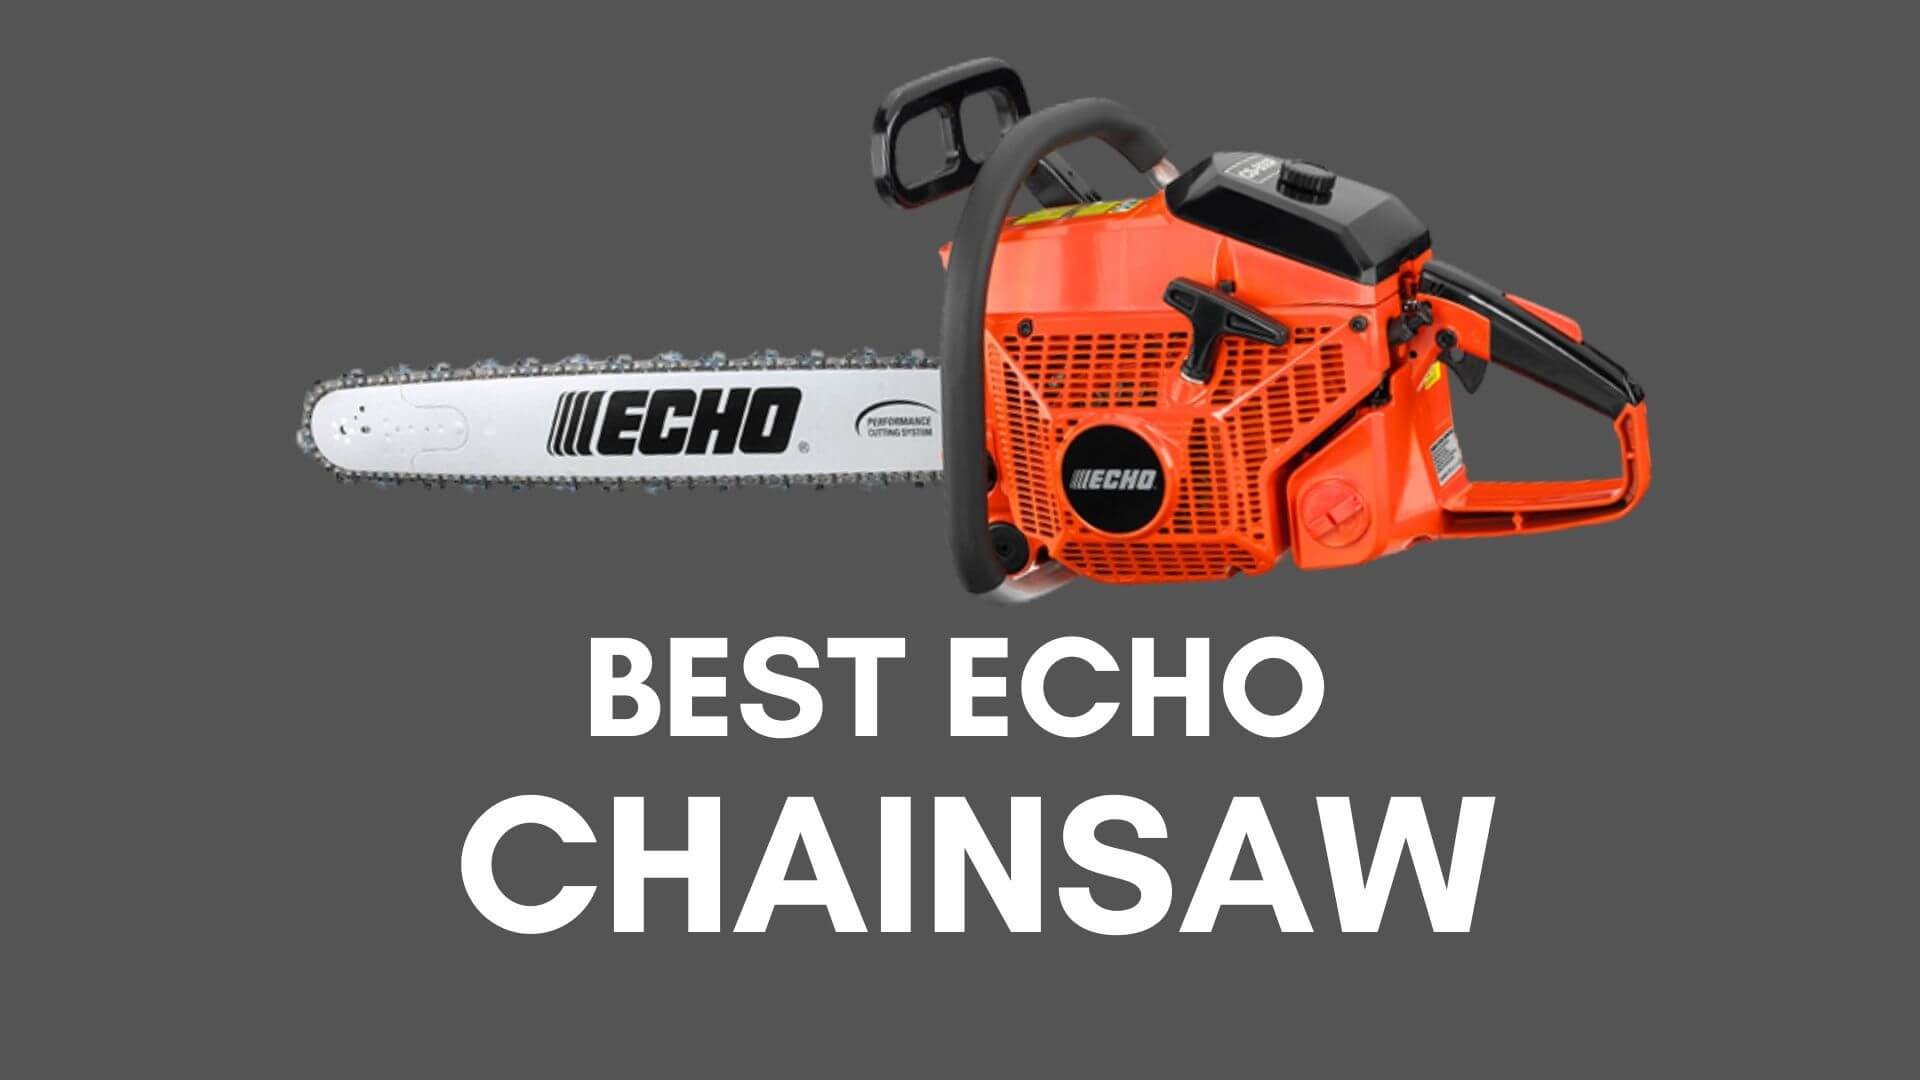 BEST echo chainsaw reviews